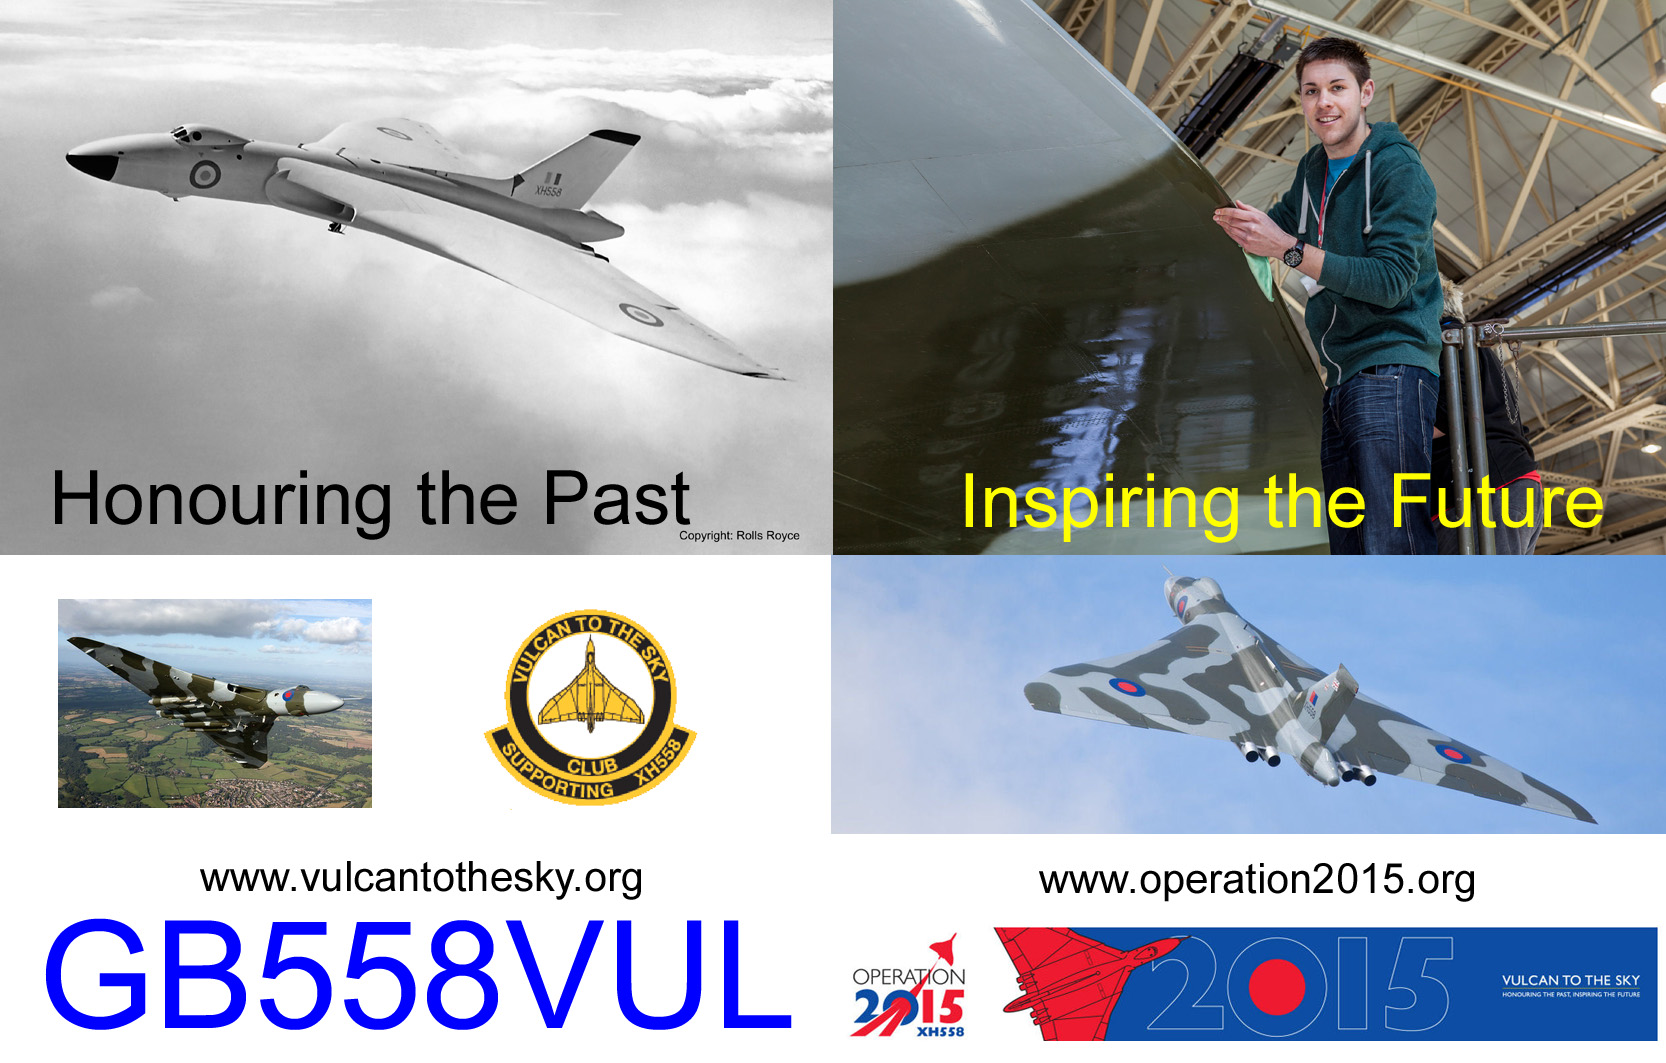 QSL image for GB558VUL